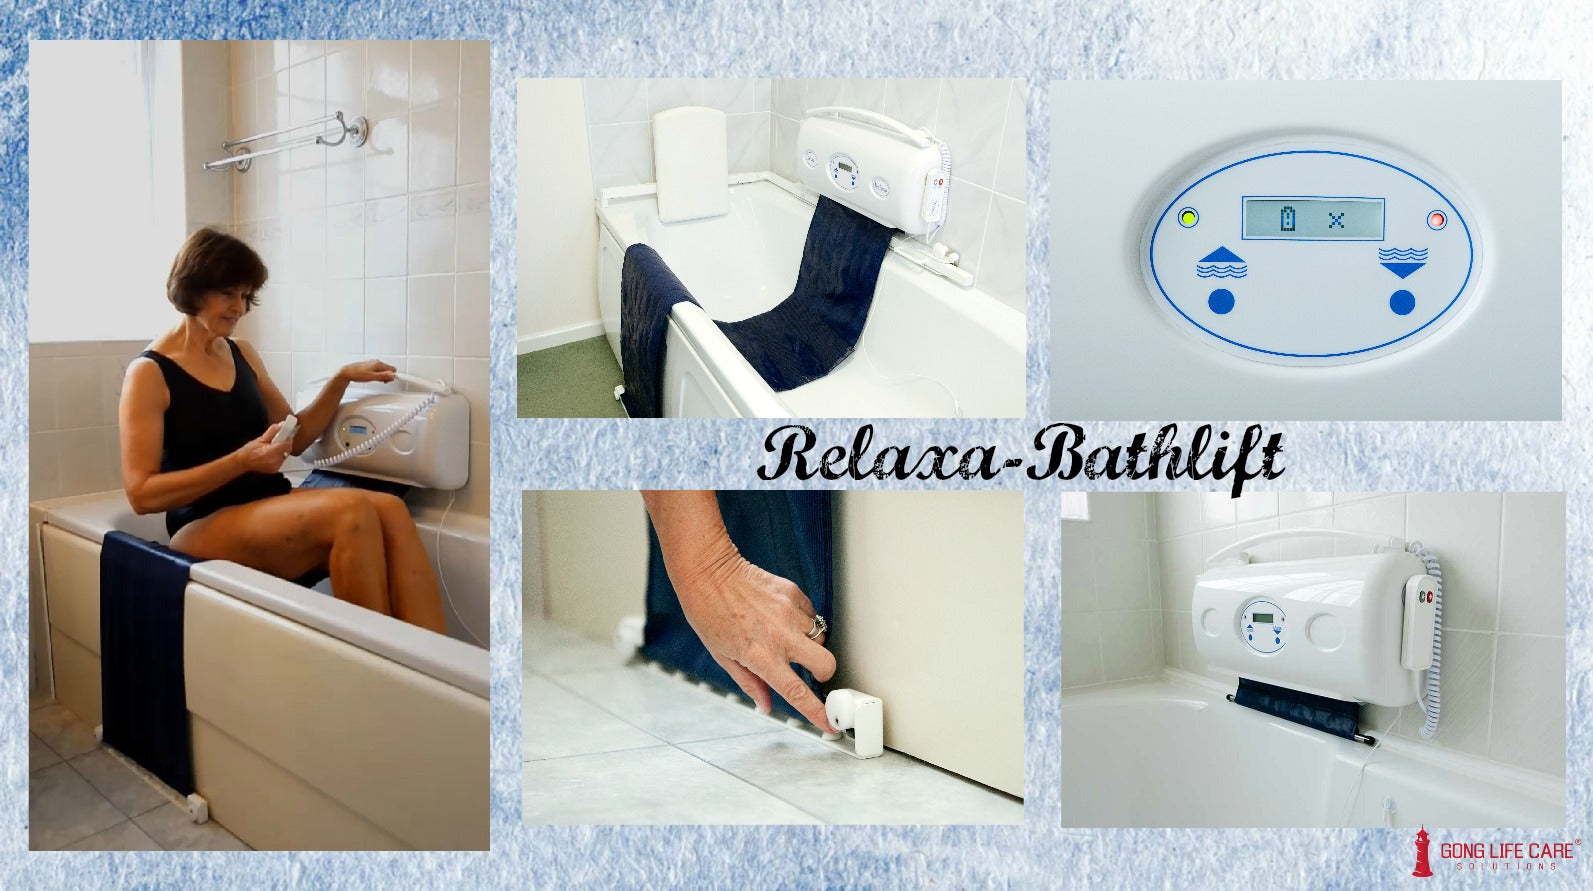 Relaxa-Bathlift, Gong Life Care Solutions, Assistive Technology